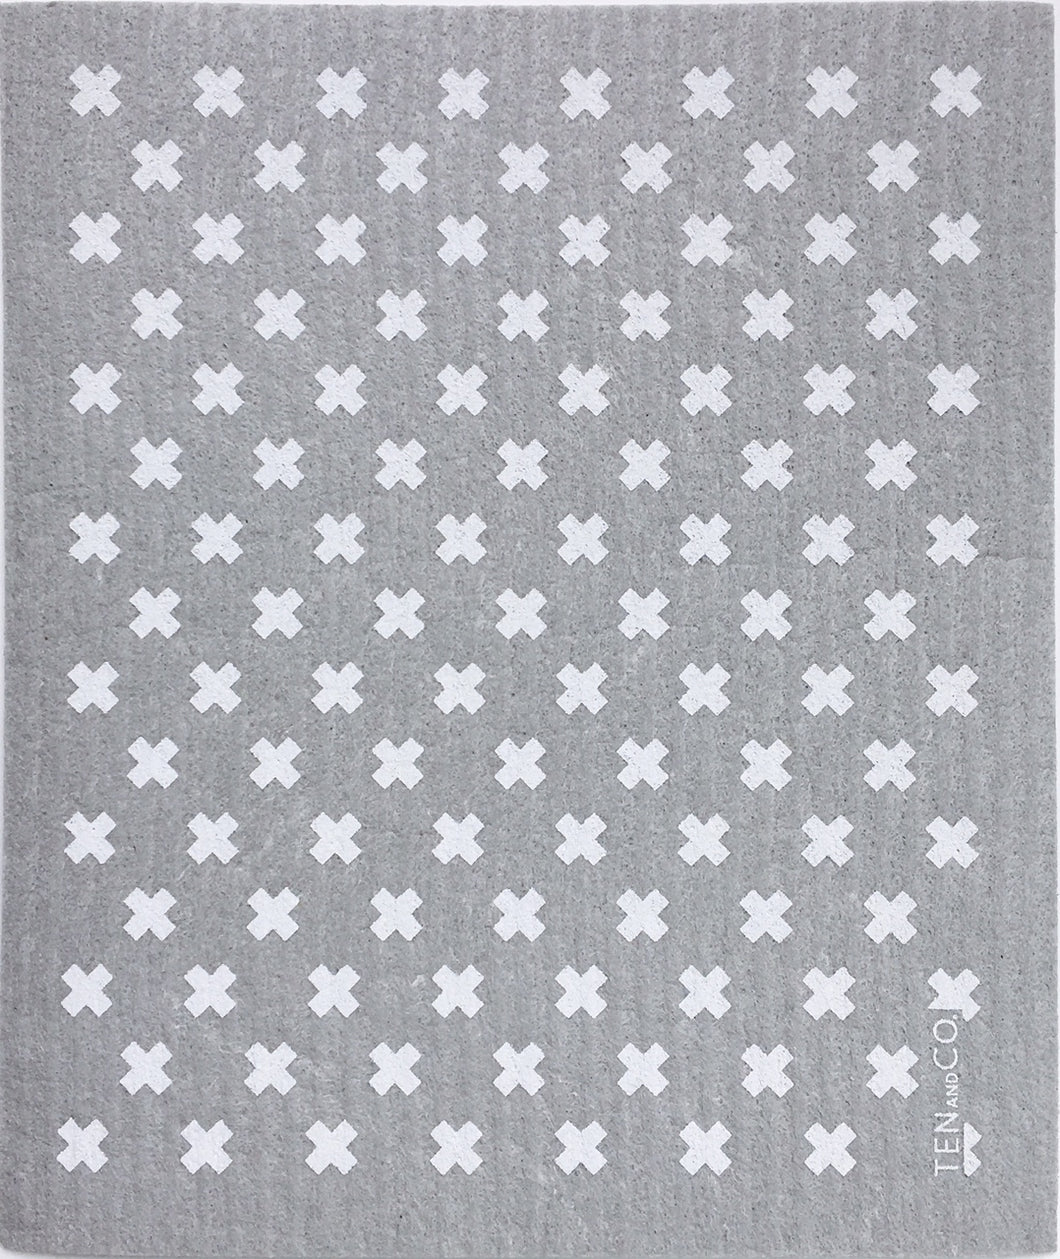 Sponge Cloth TINY X Grey